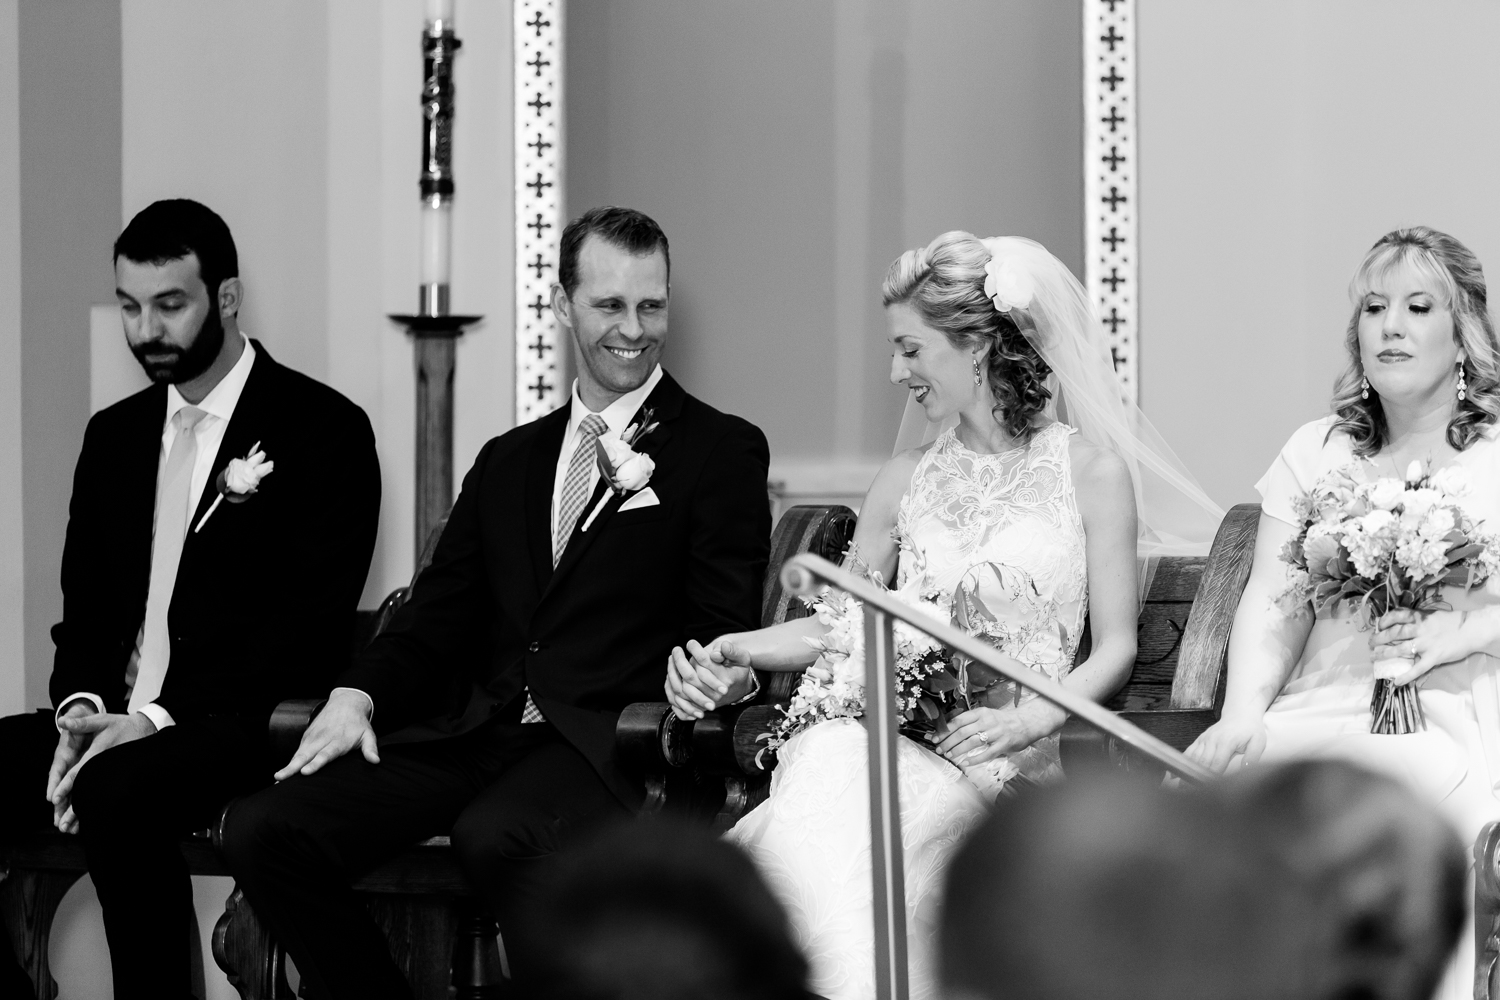 The bride and groom hold hands during their church ceremony.